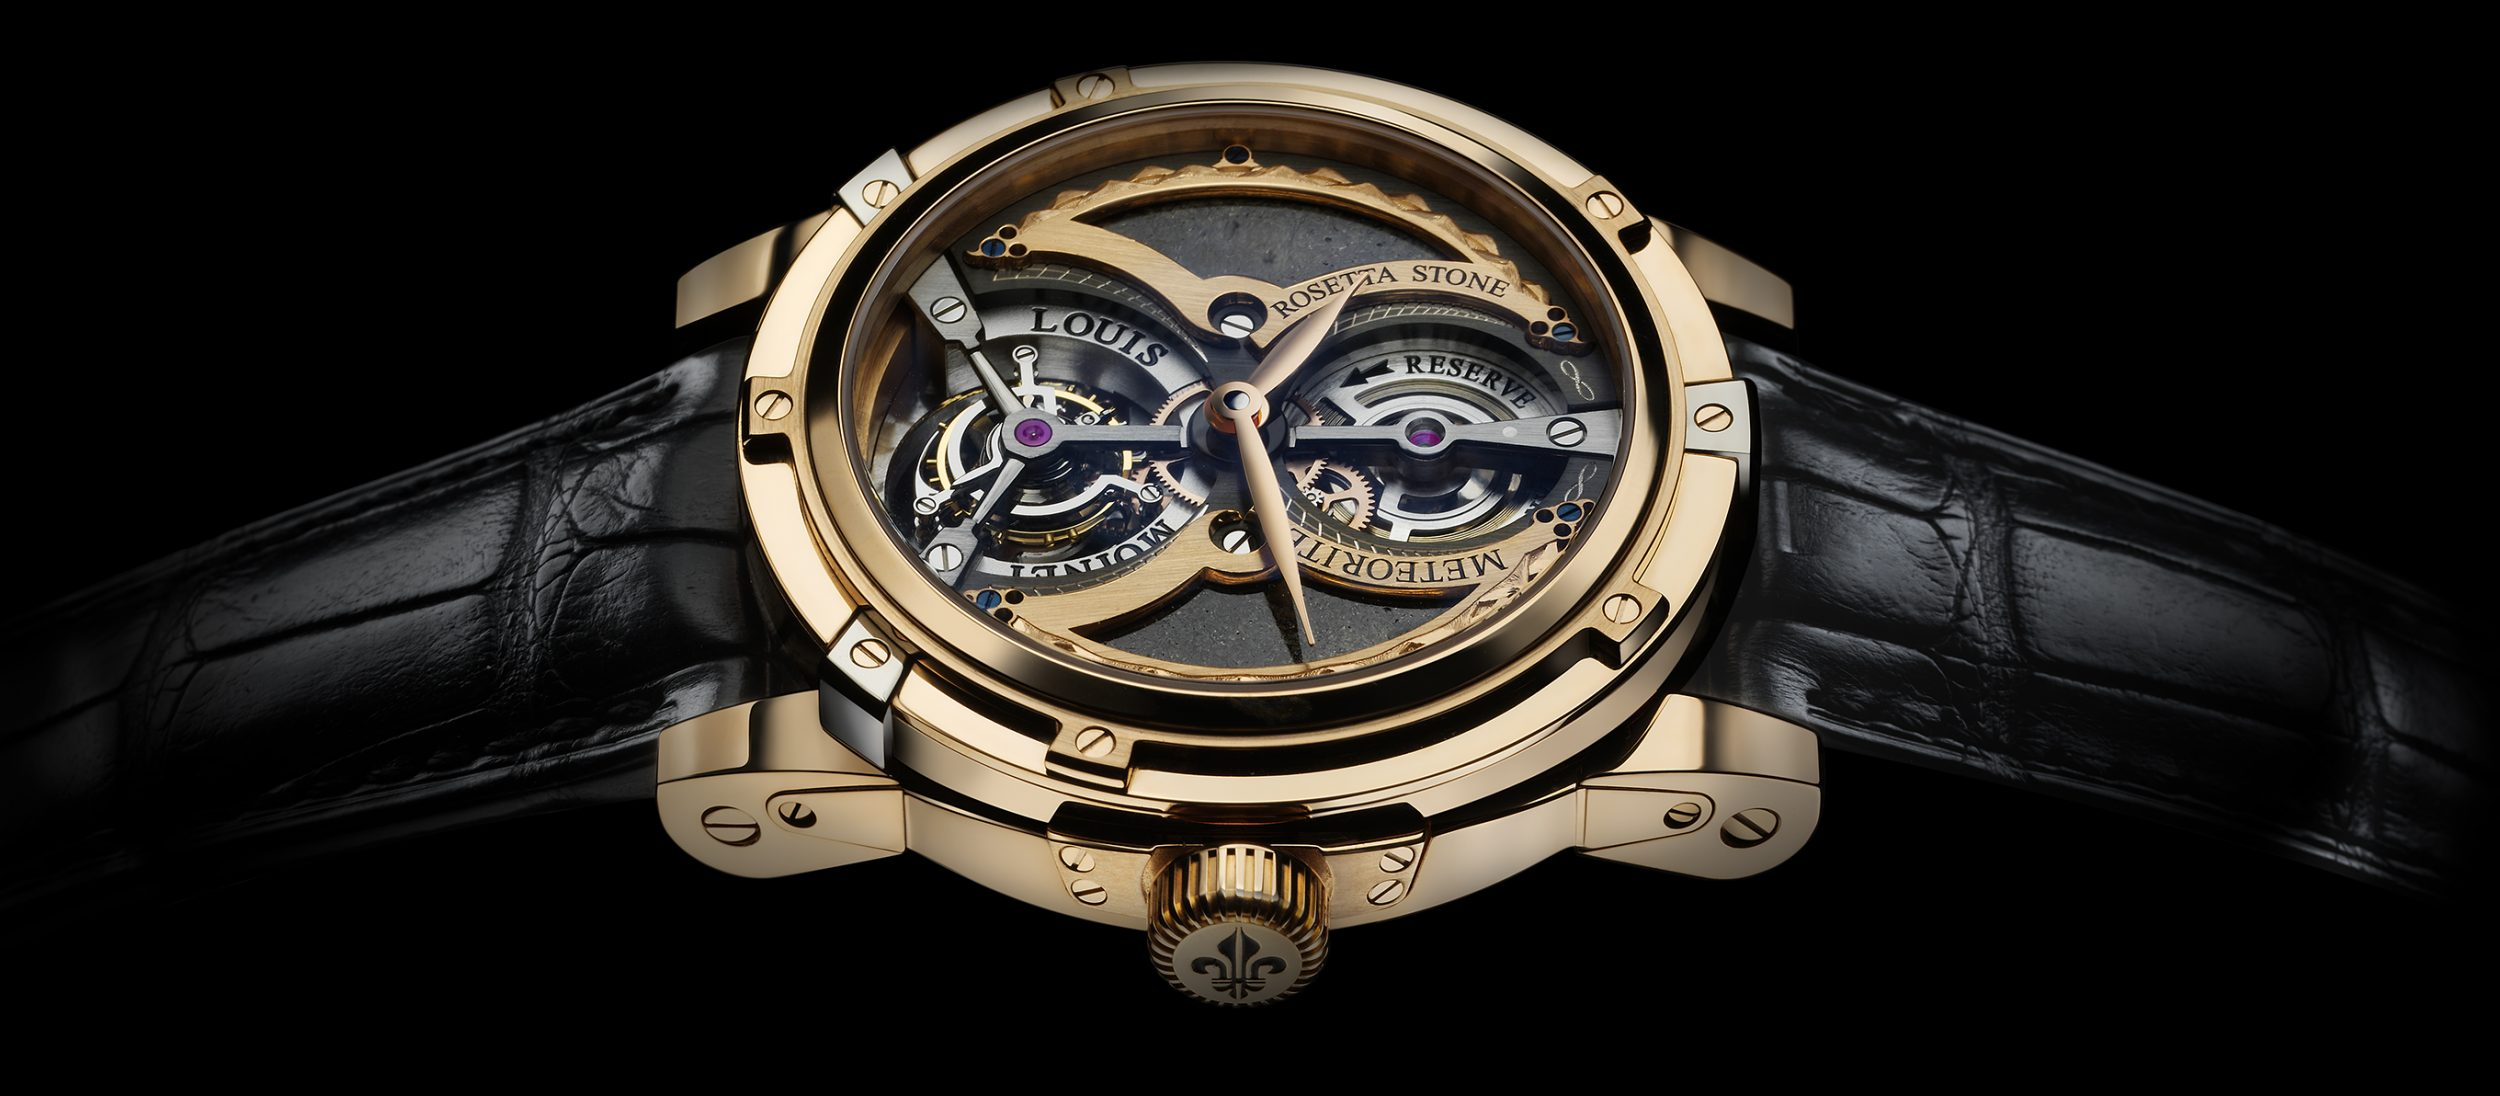 Louis Moinet Meteoris Collection